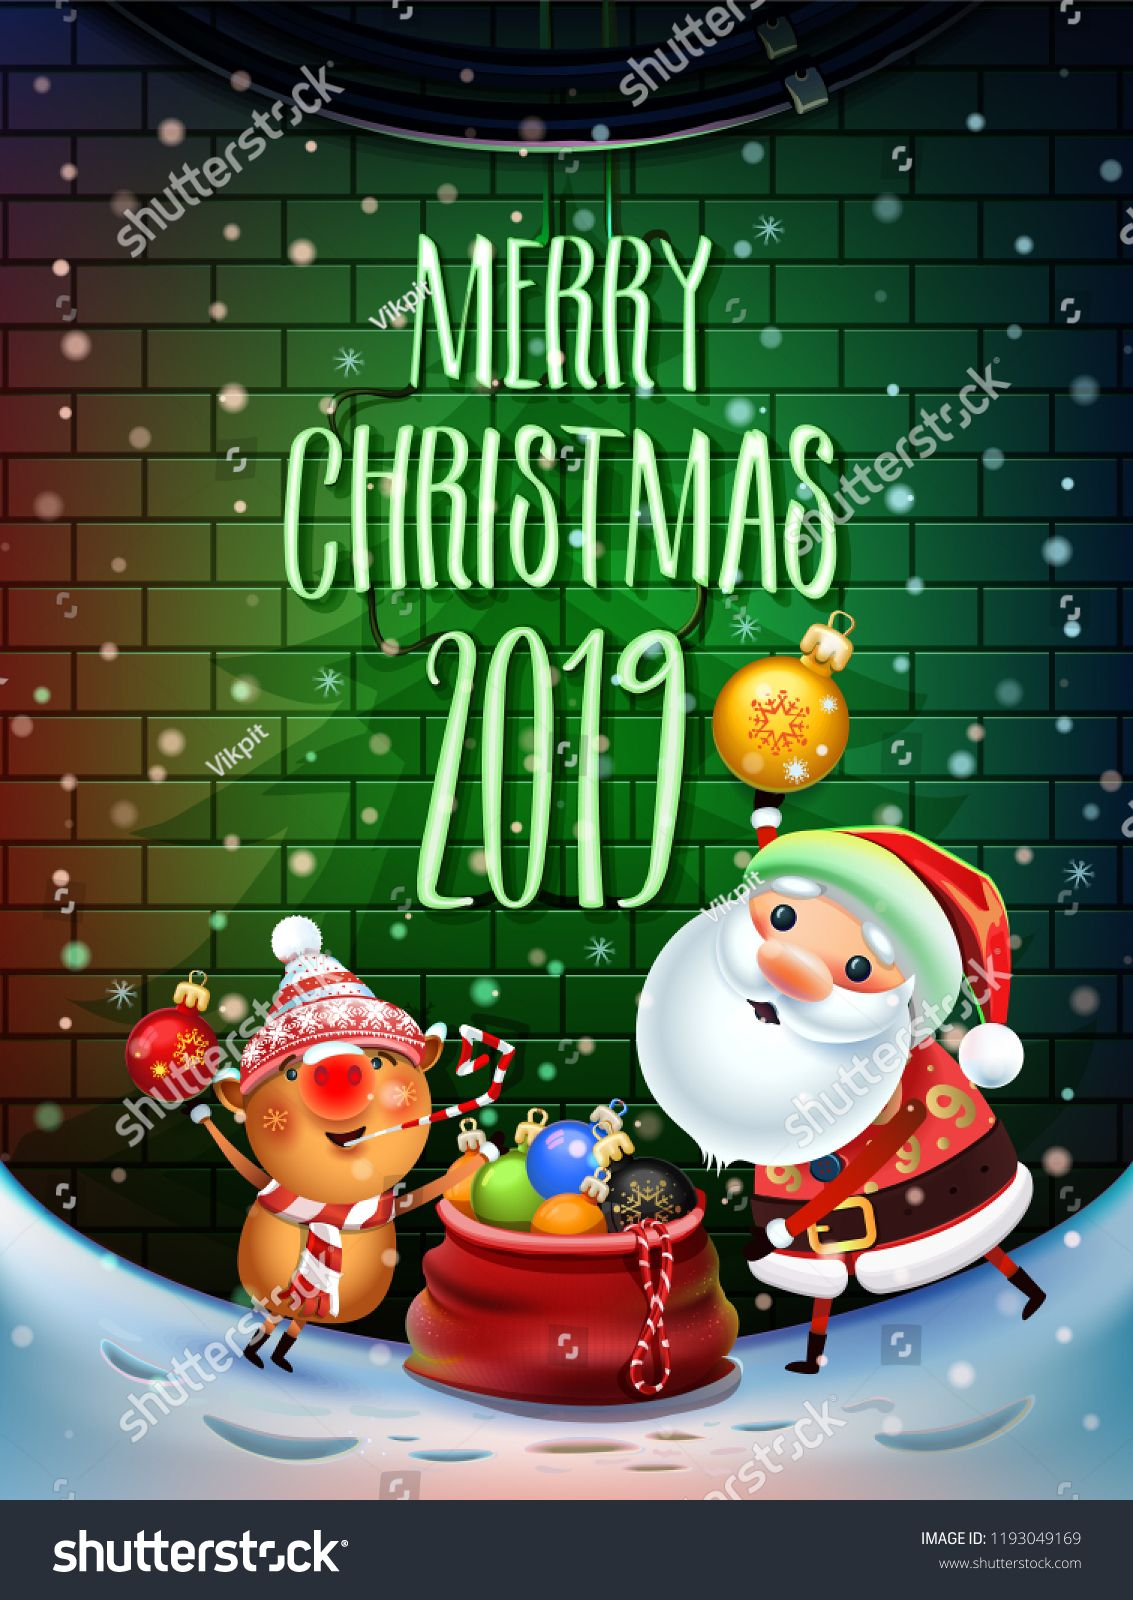 2019 Merry Christmas and New Year symbol. Santa Claus on a